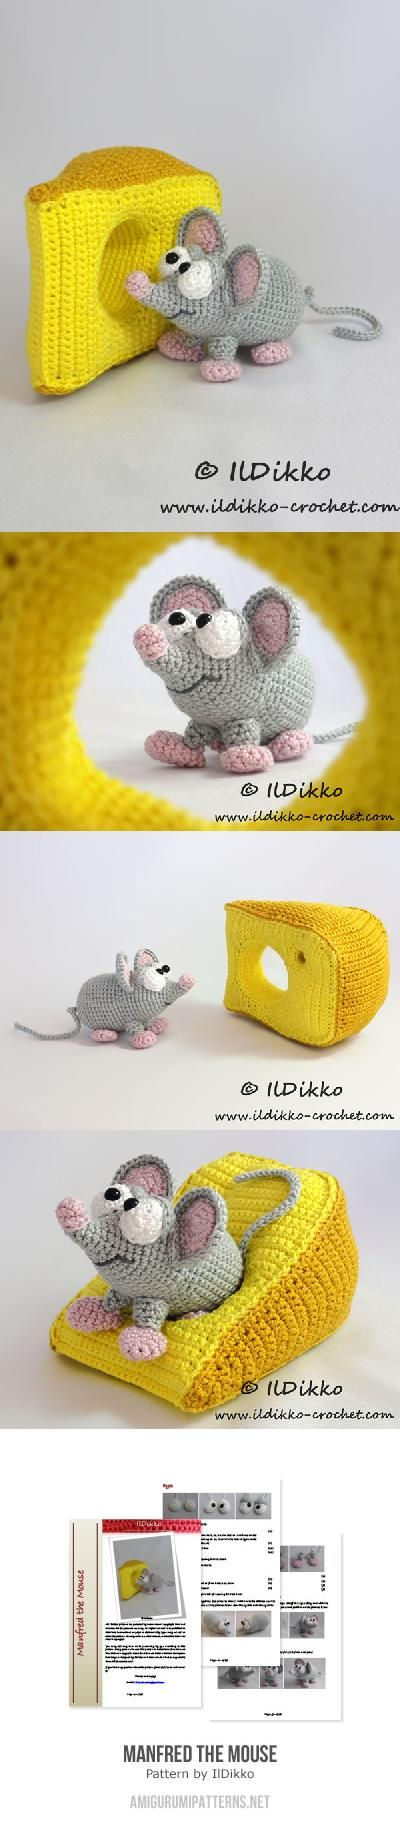 Manfred The Mouse Amigurumi Pattern